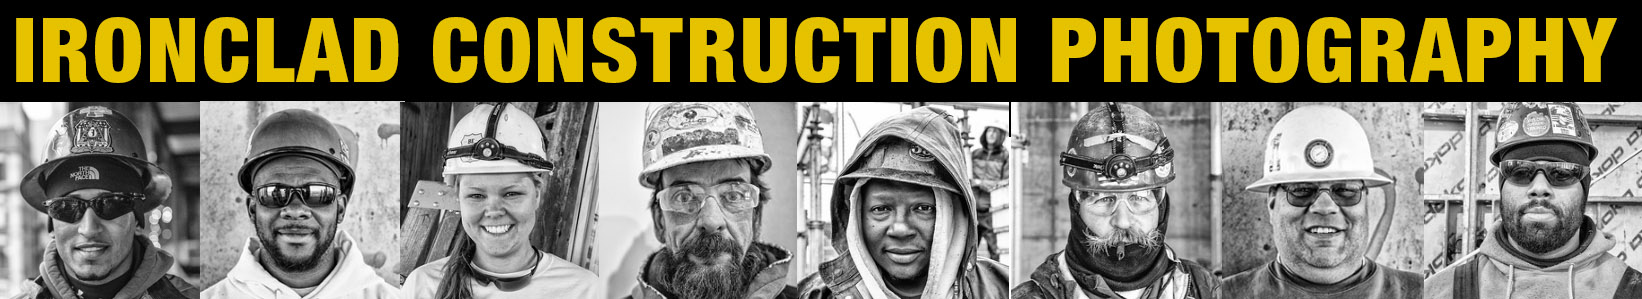 ironclad-construction-photography-header